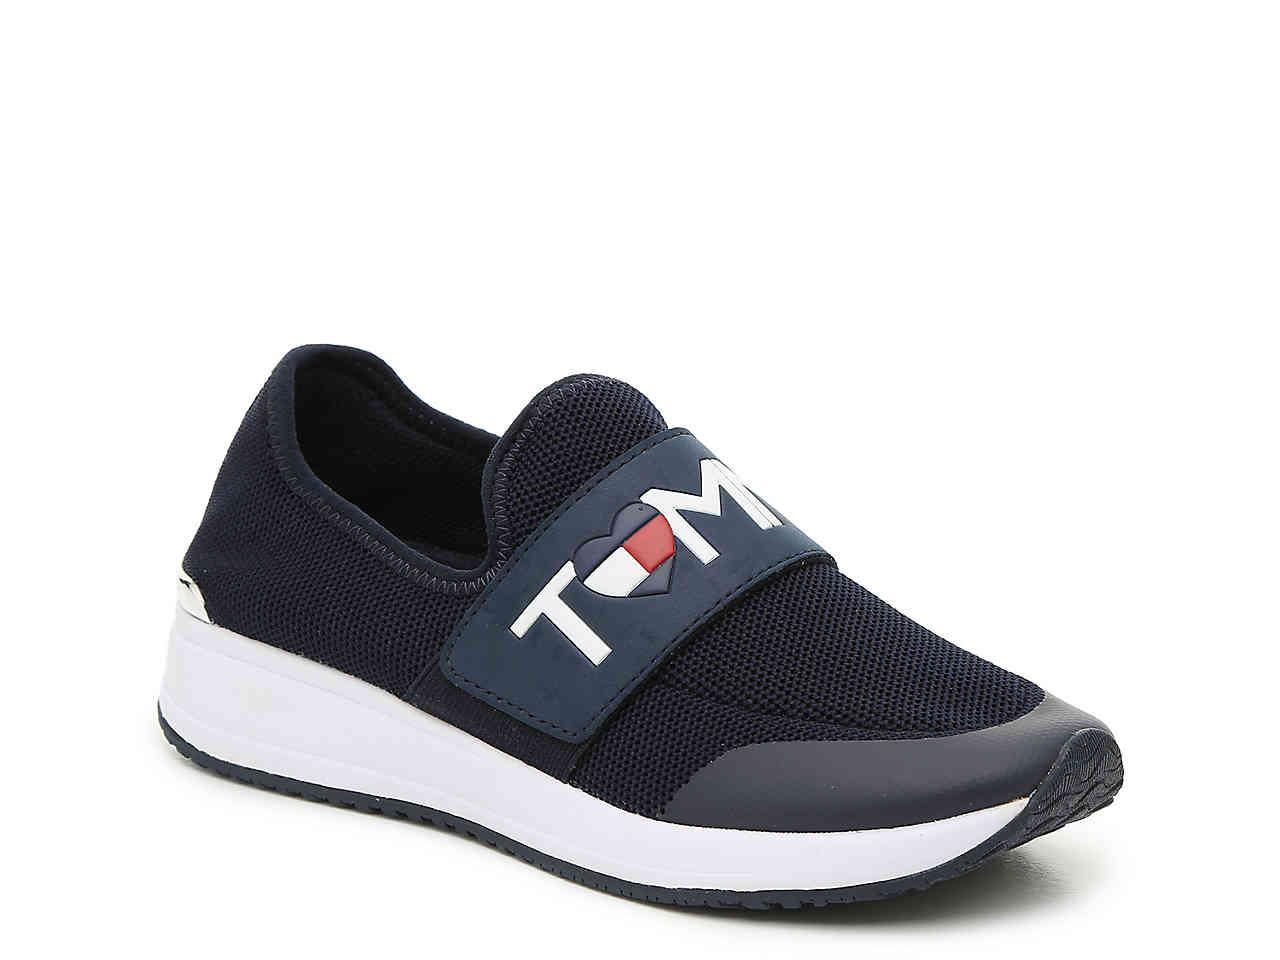 b88d71216b62 Lyst - Tommy Hilfiger Rosin Slip-on Sneaker in Blue